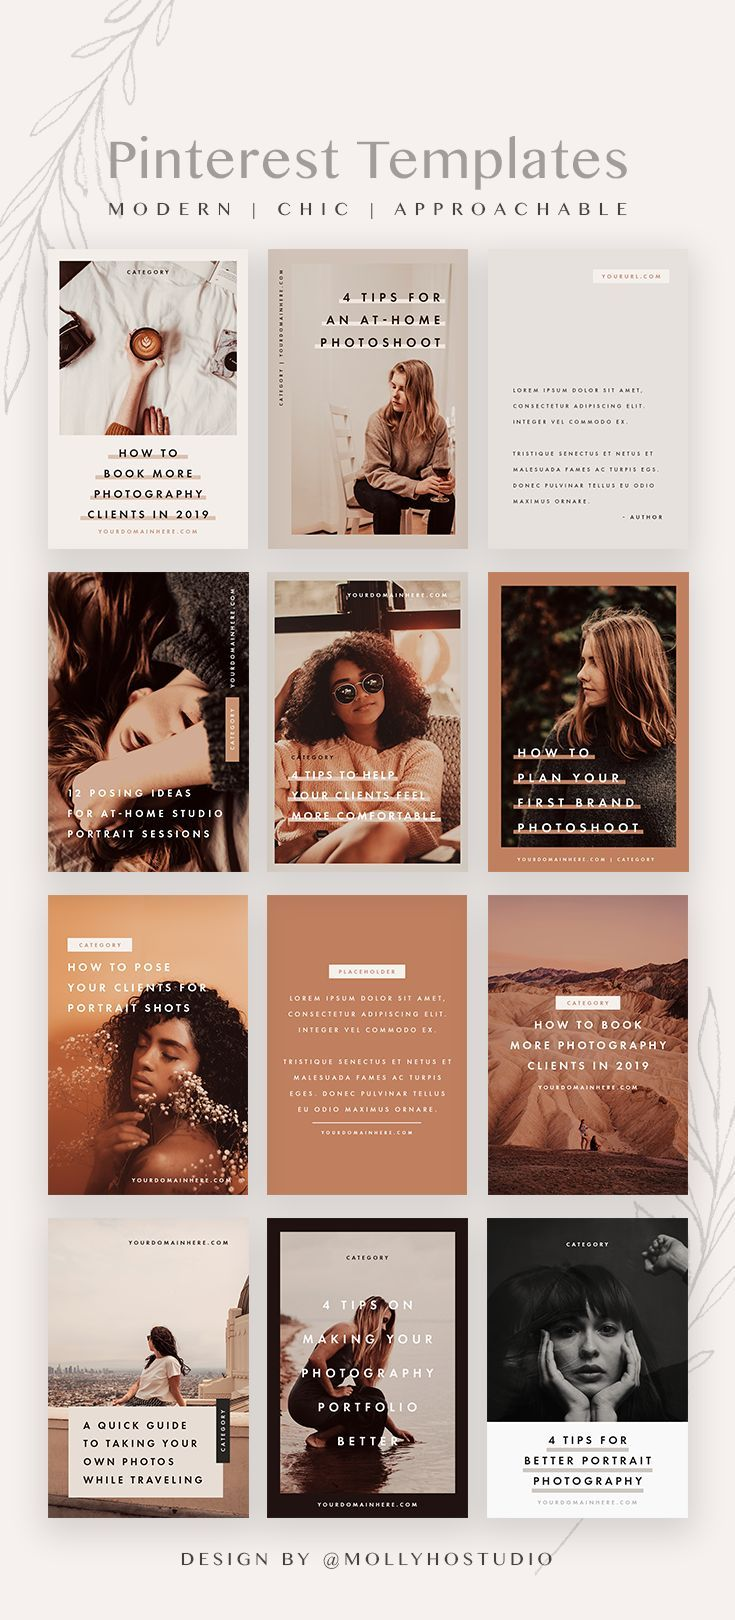 Modern Pinterest Template Set Pinterest Templates Social Media Business Blog Post Graphics